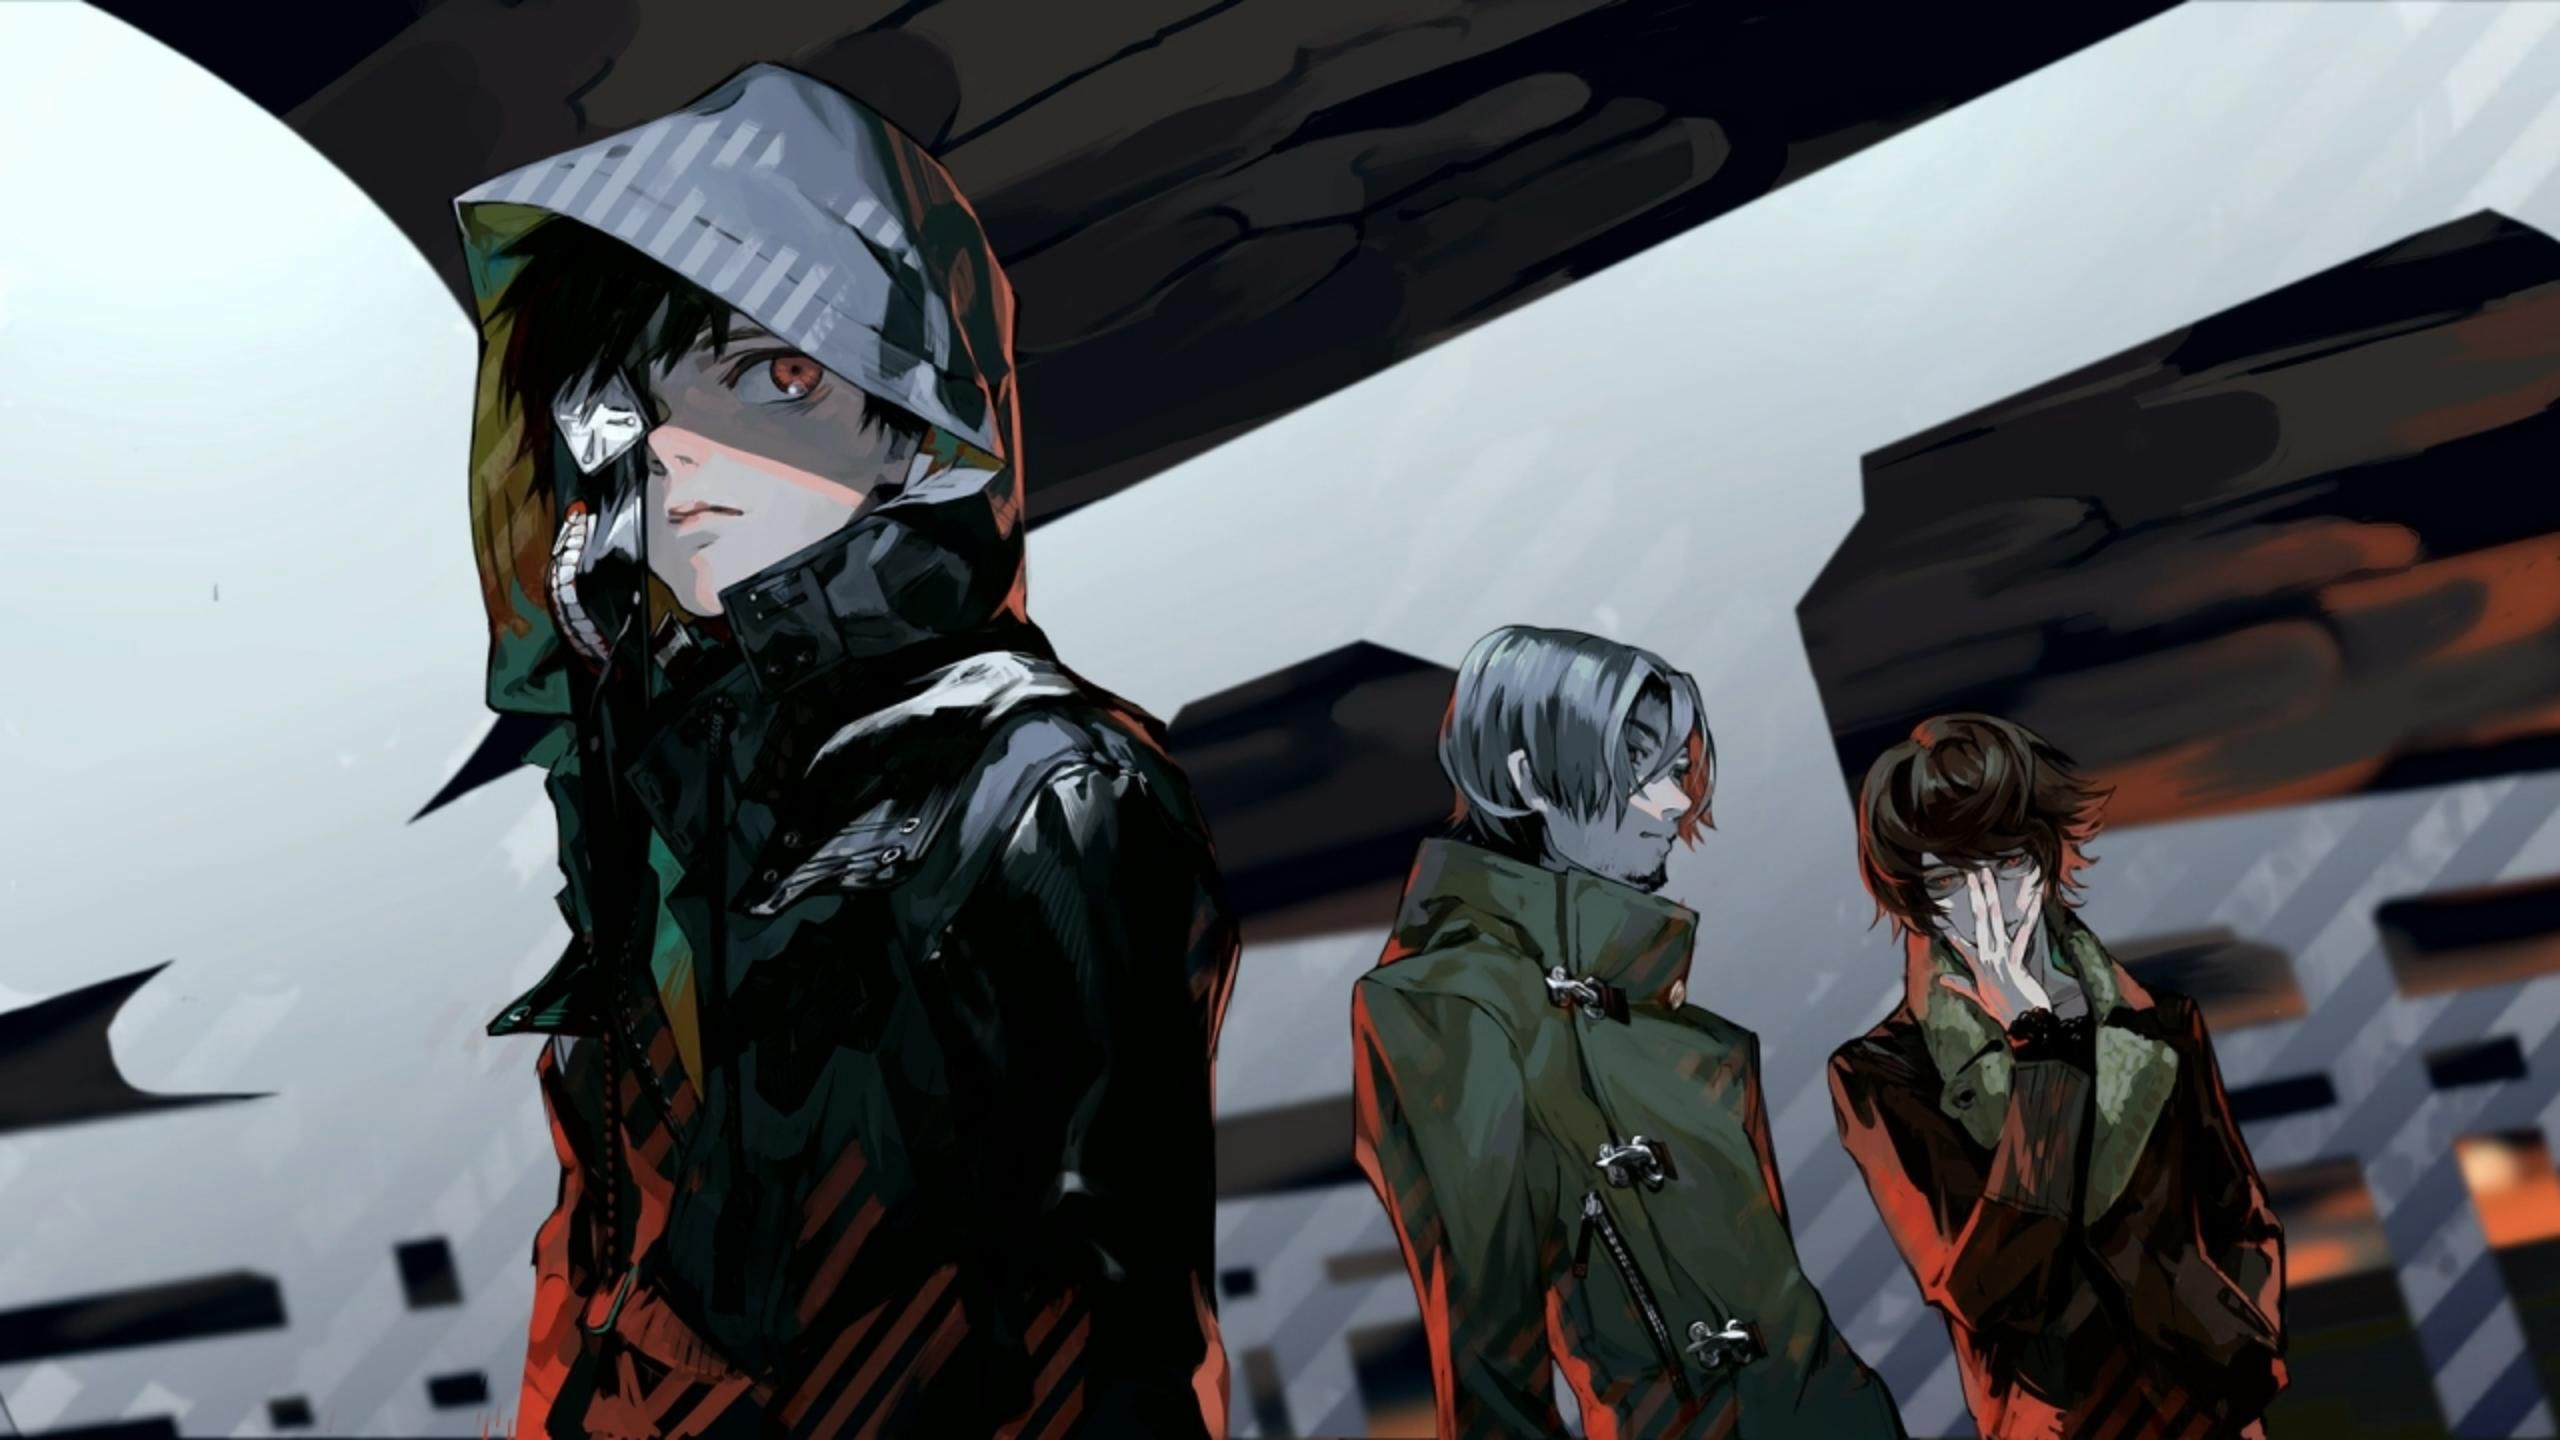 Google chrome themes tokyo ghoul - For Those Of You Who Do Not Yet Know Tokyo Ghoul Follows The Story Of